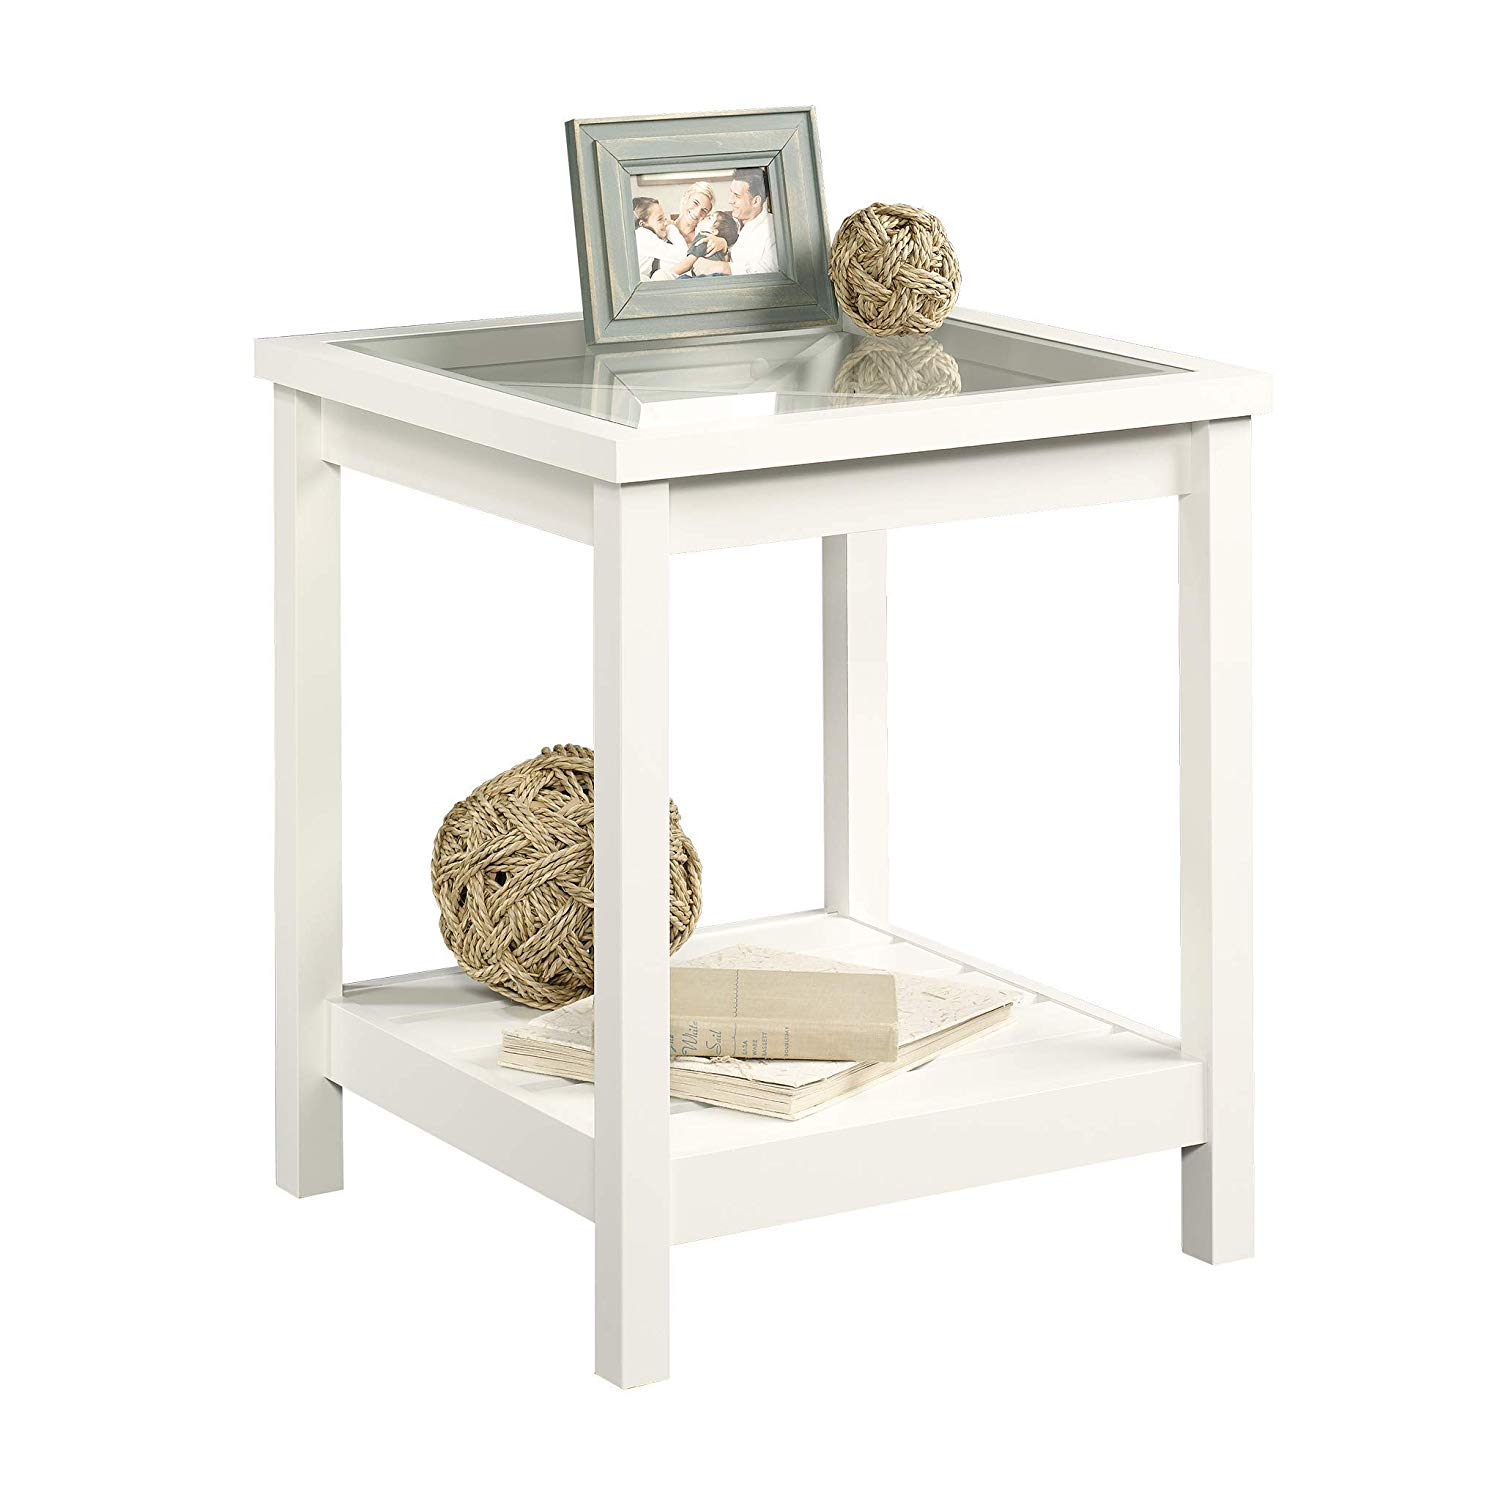 sauder cottage road side table farmhouse style accent soft white finish kitchen dining inexpensive coffee tables round wood top small foyer antique folding tall nesting barn door